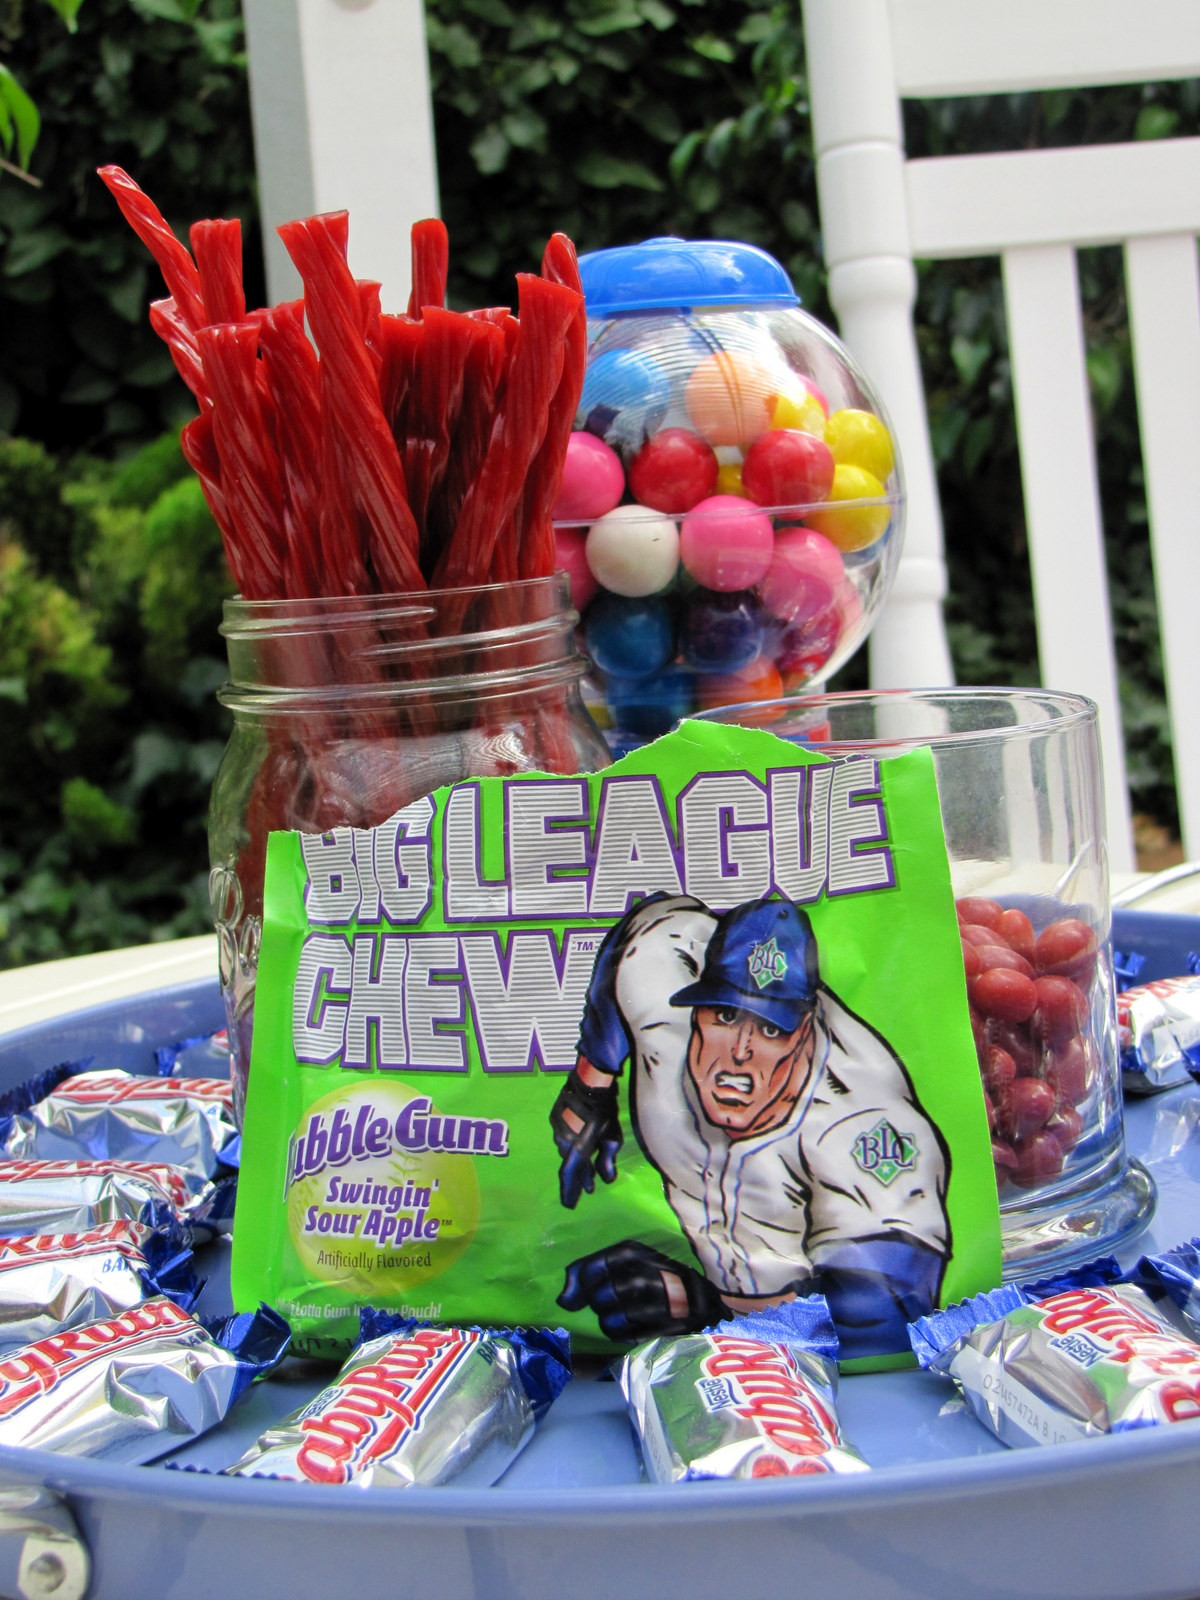 Best ideas about Baseball Themed Birthday Party . Save or Pin Vintage Baseball Party Now.